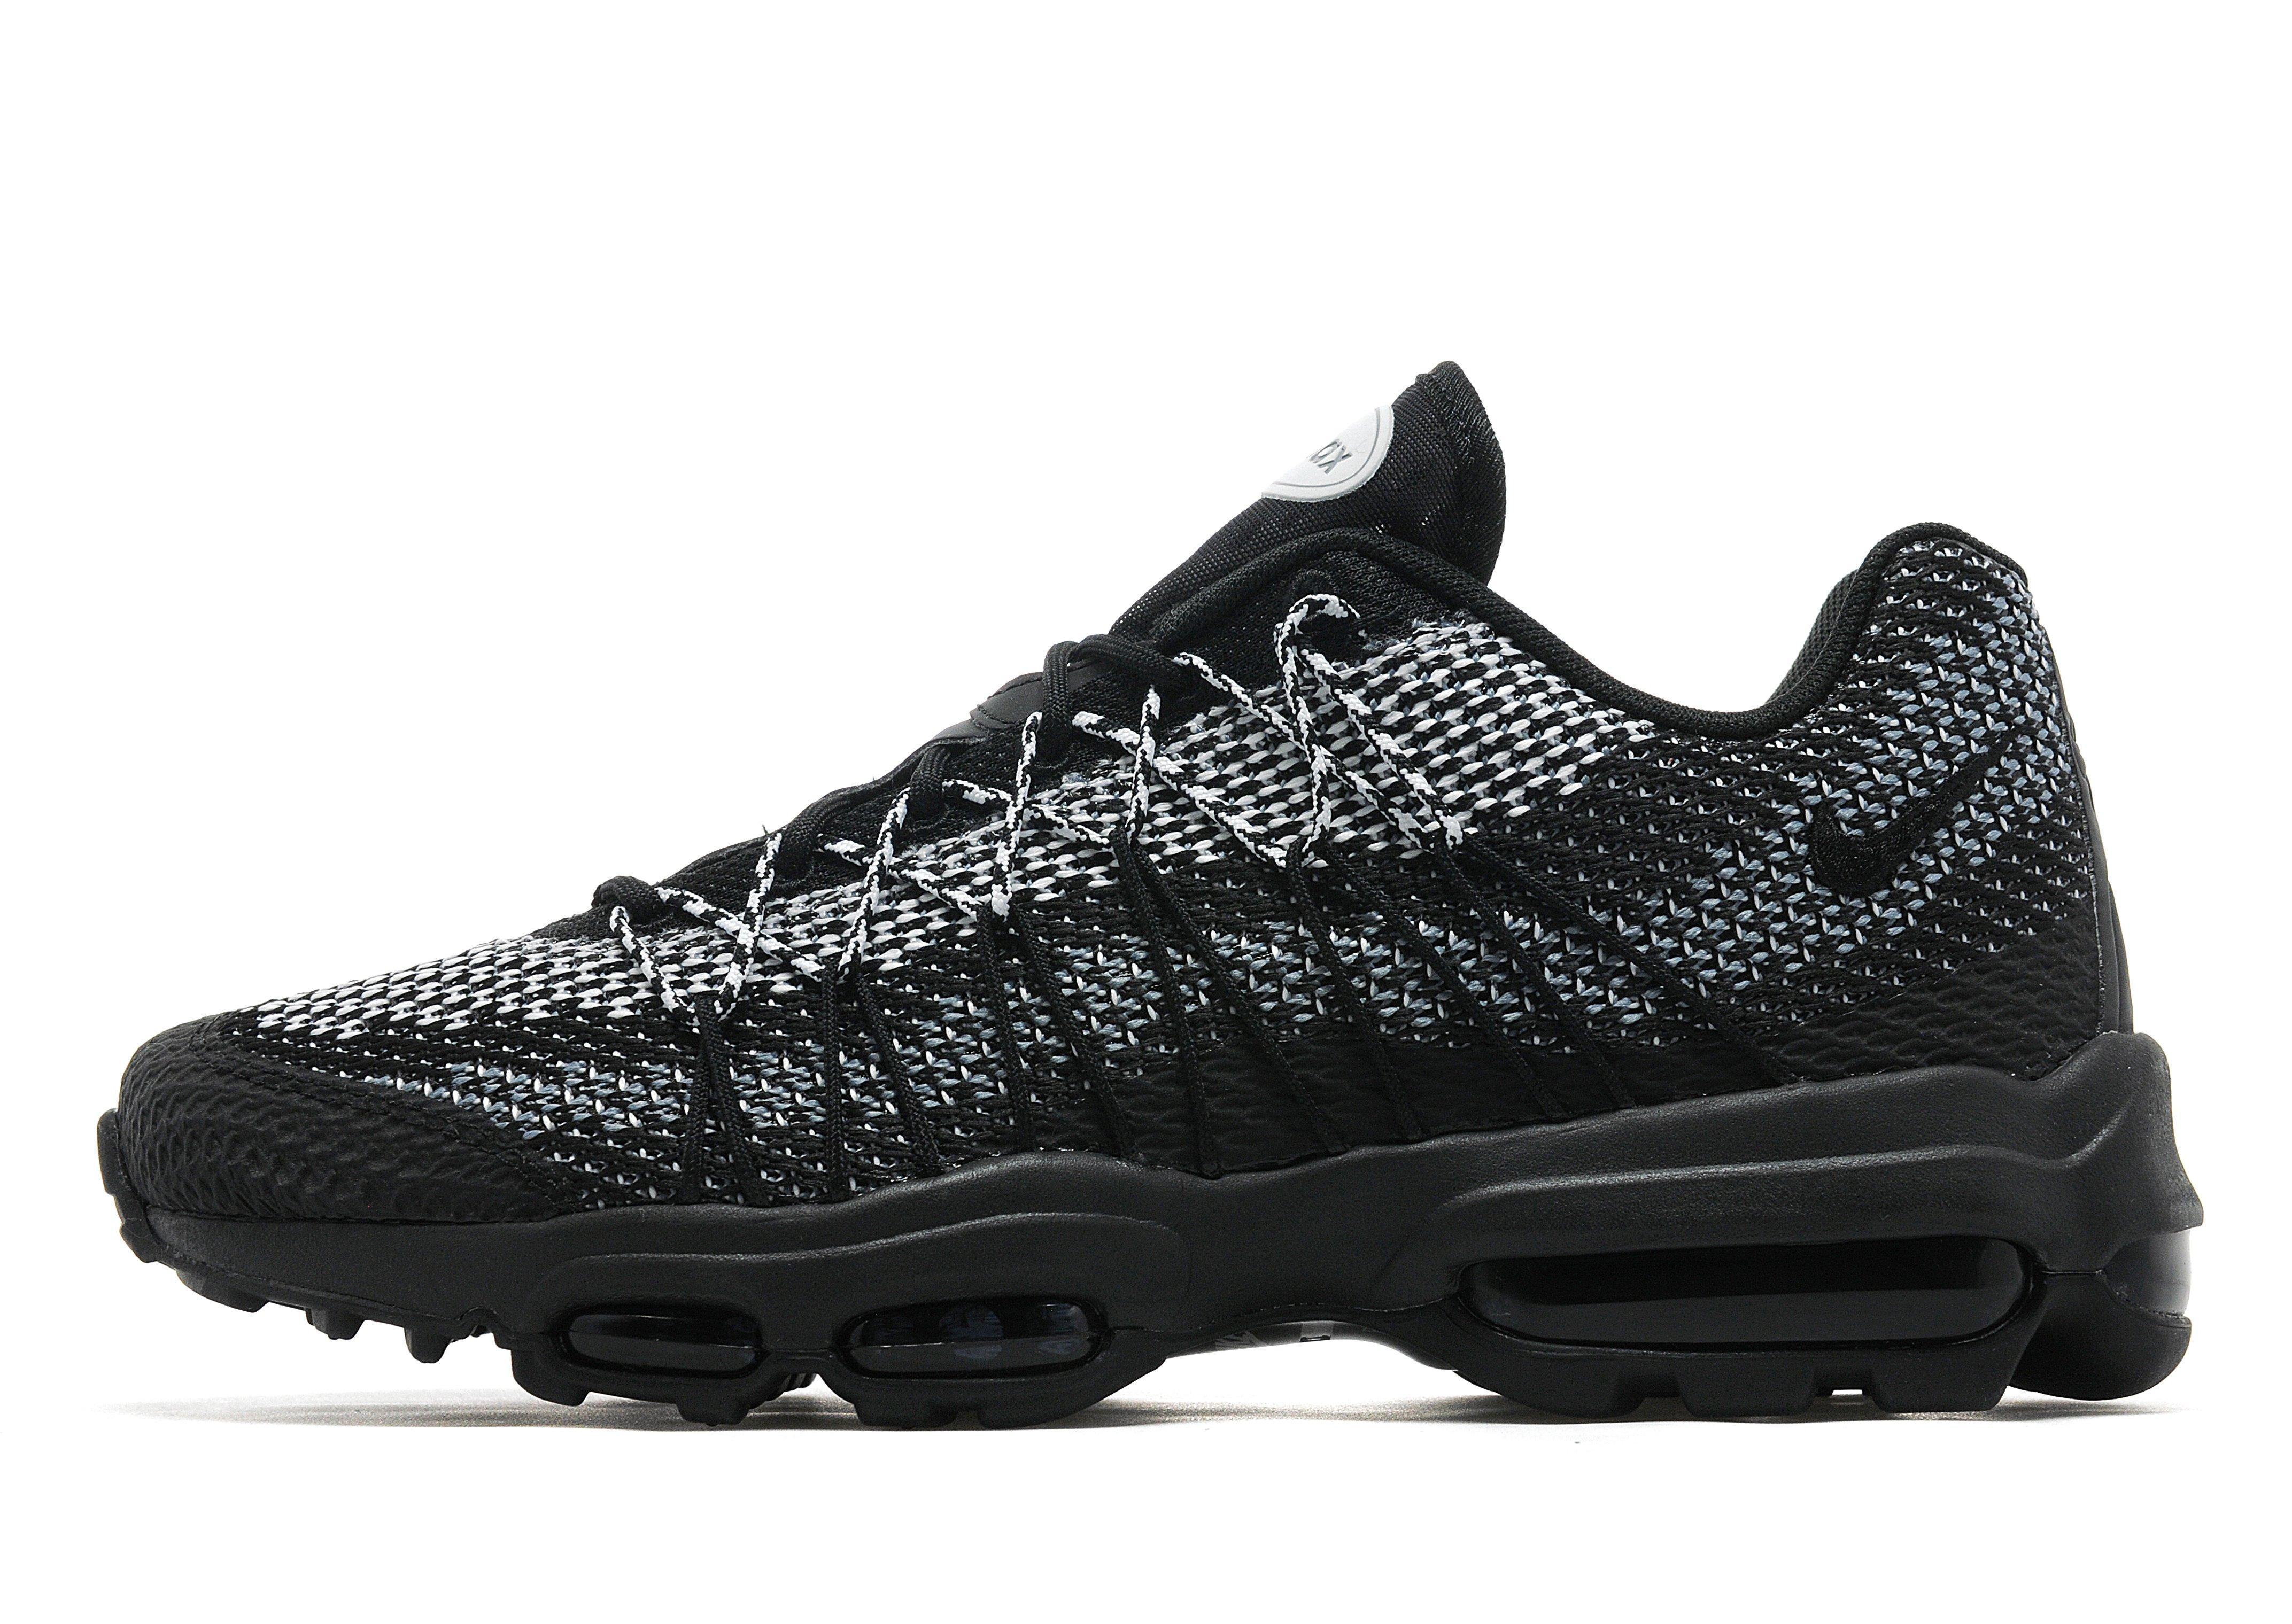 Nike Synthetic Air Max 95 Ultra Jacquard in Black for Men - Lyst